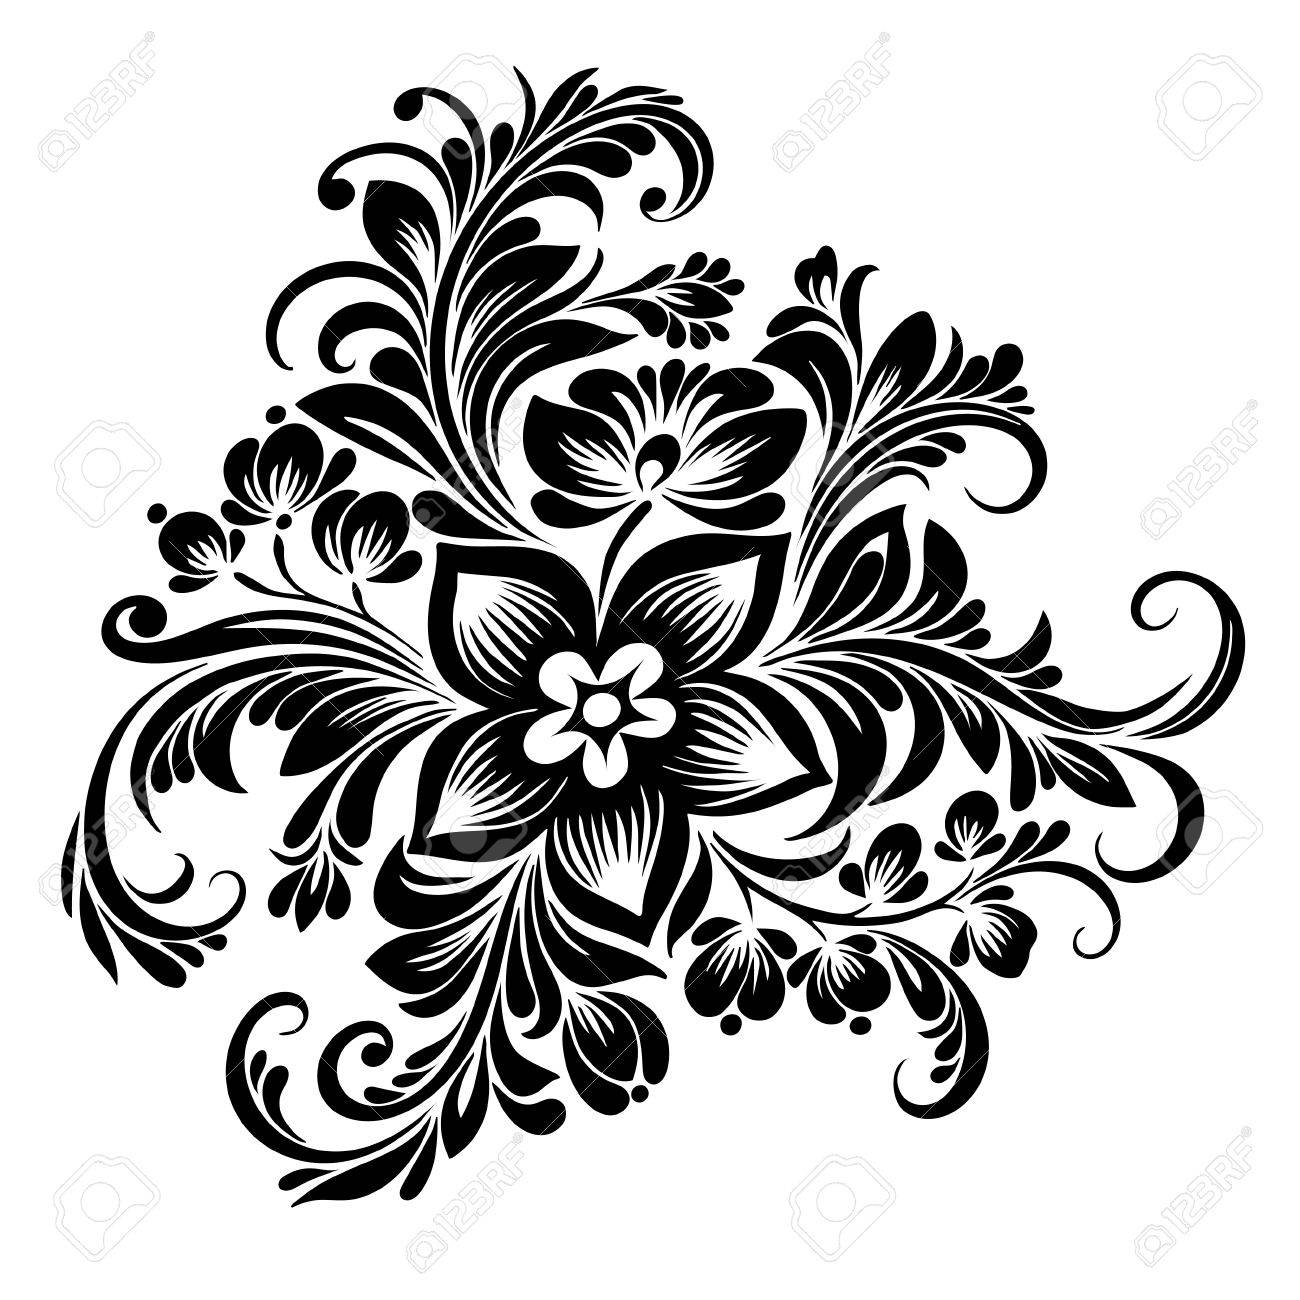 Vector Black And White Pattern Of Stylized Flowers In Folk Style